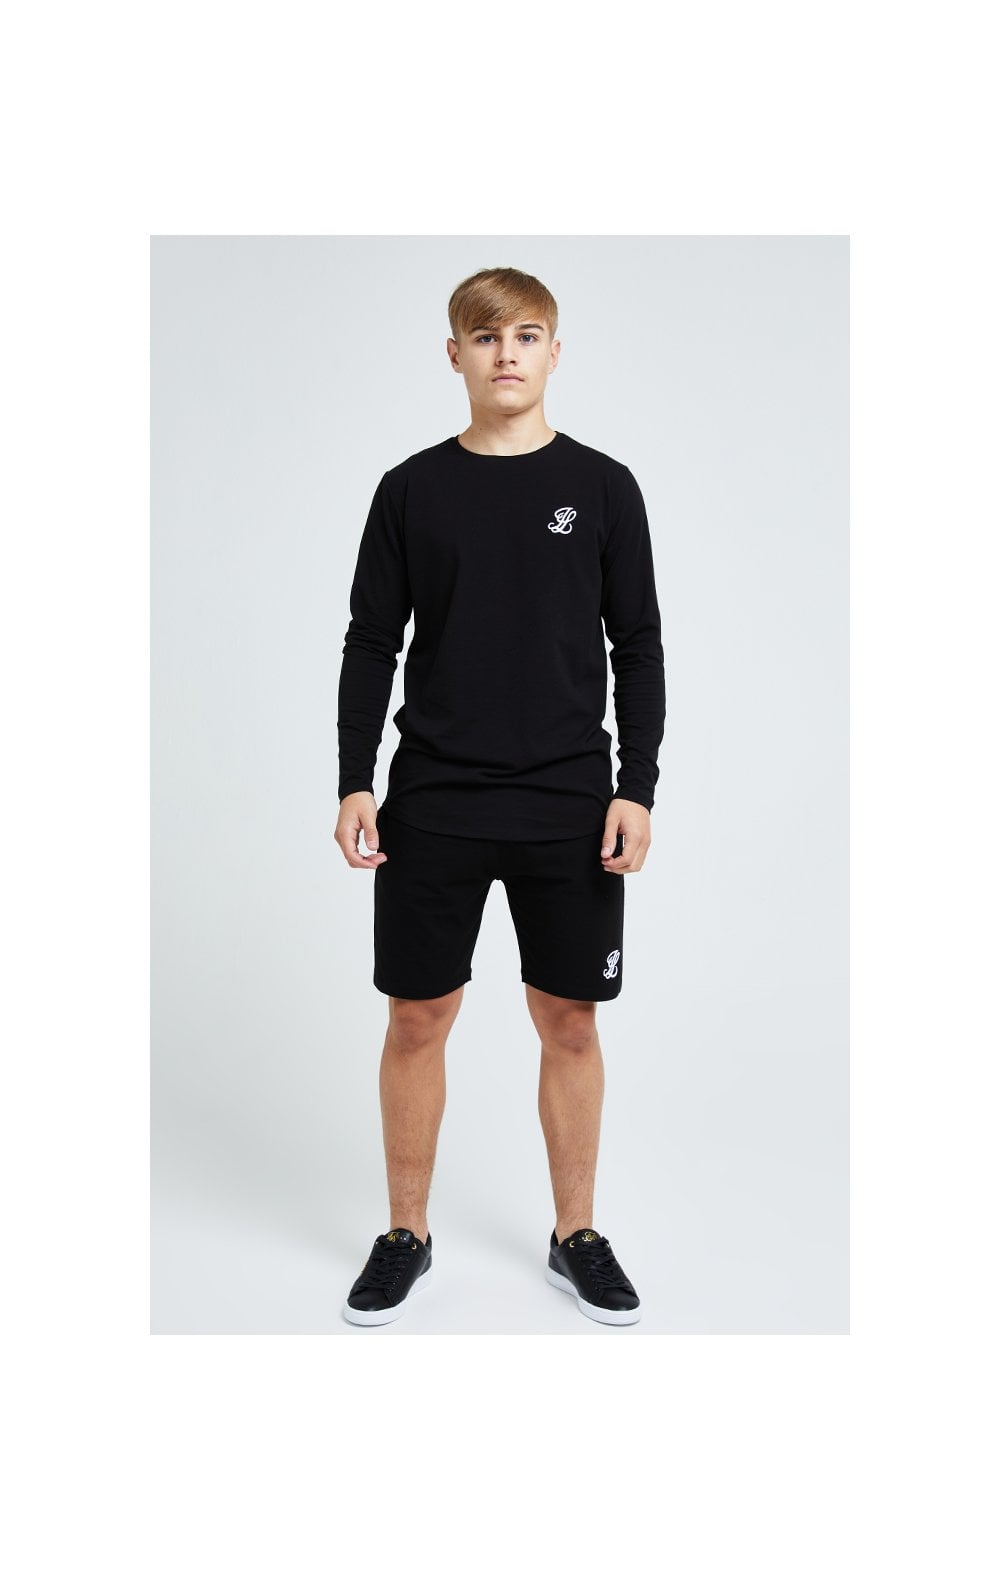 Illusive London L/S Core Tee - Black (3)